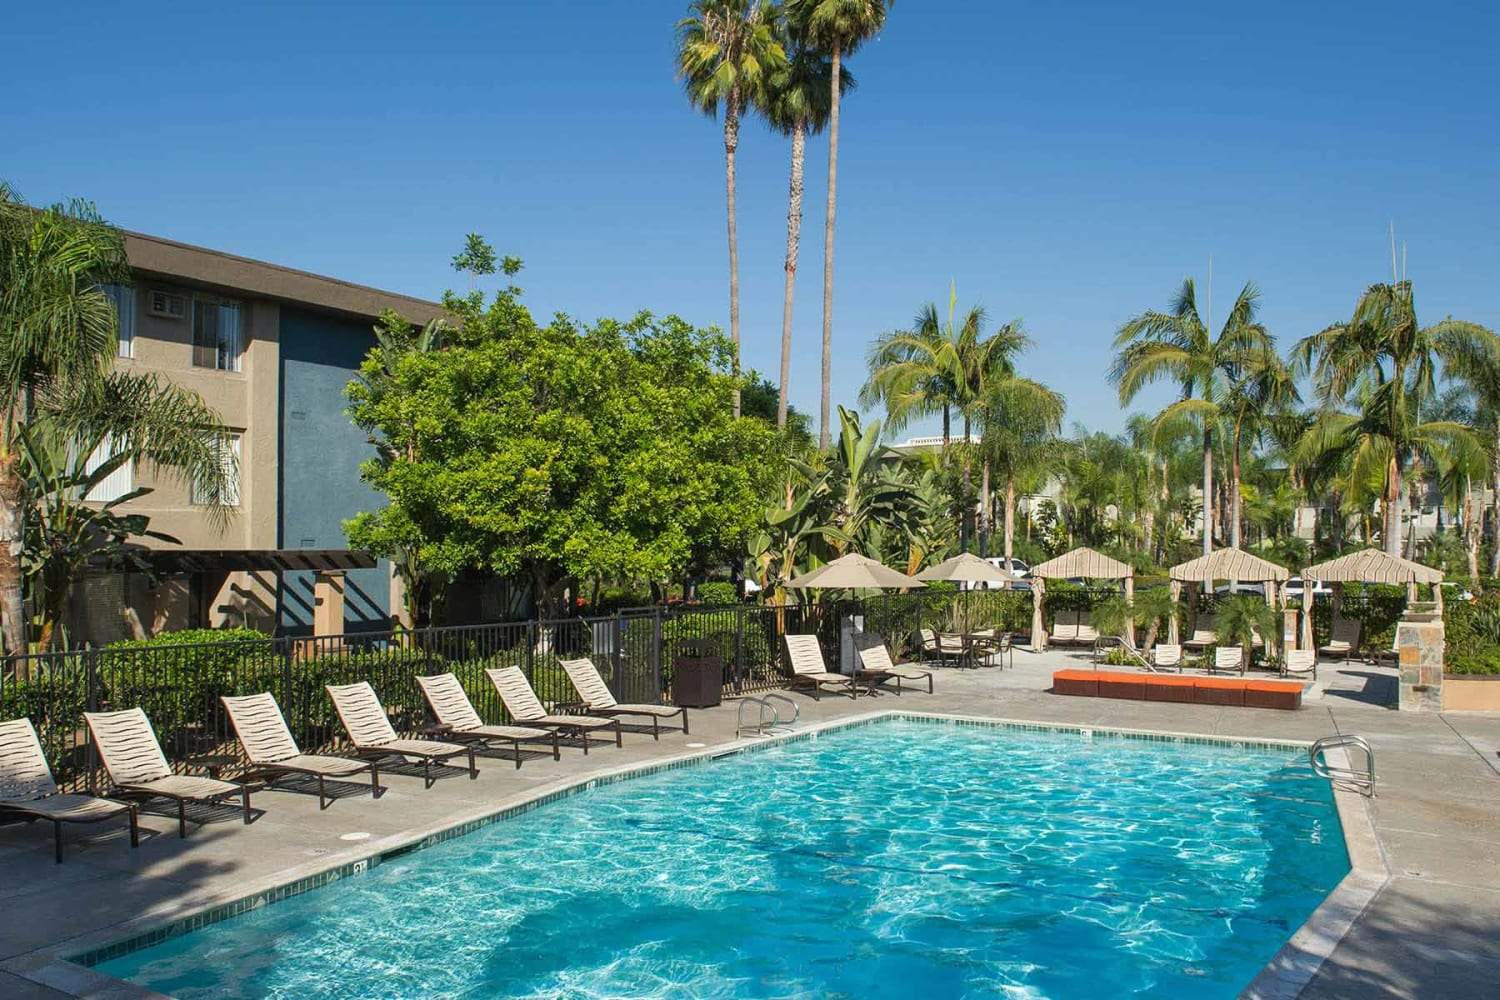 Enjoy apartments with a swimming pool at UCA Apartment Homes in Fullerton, California